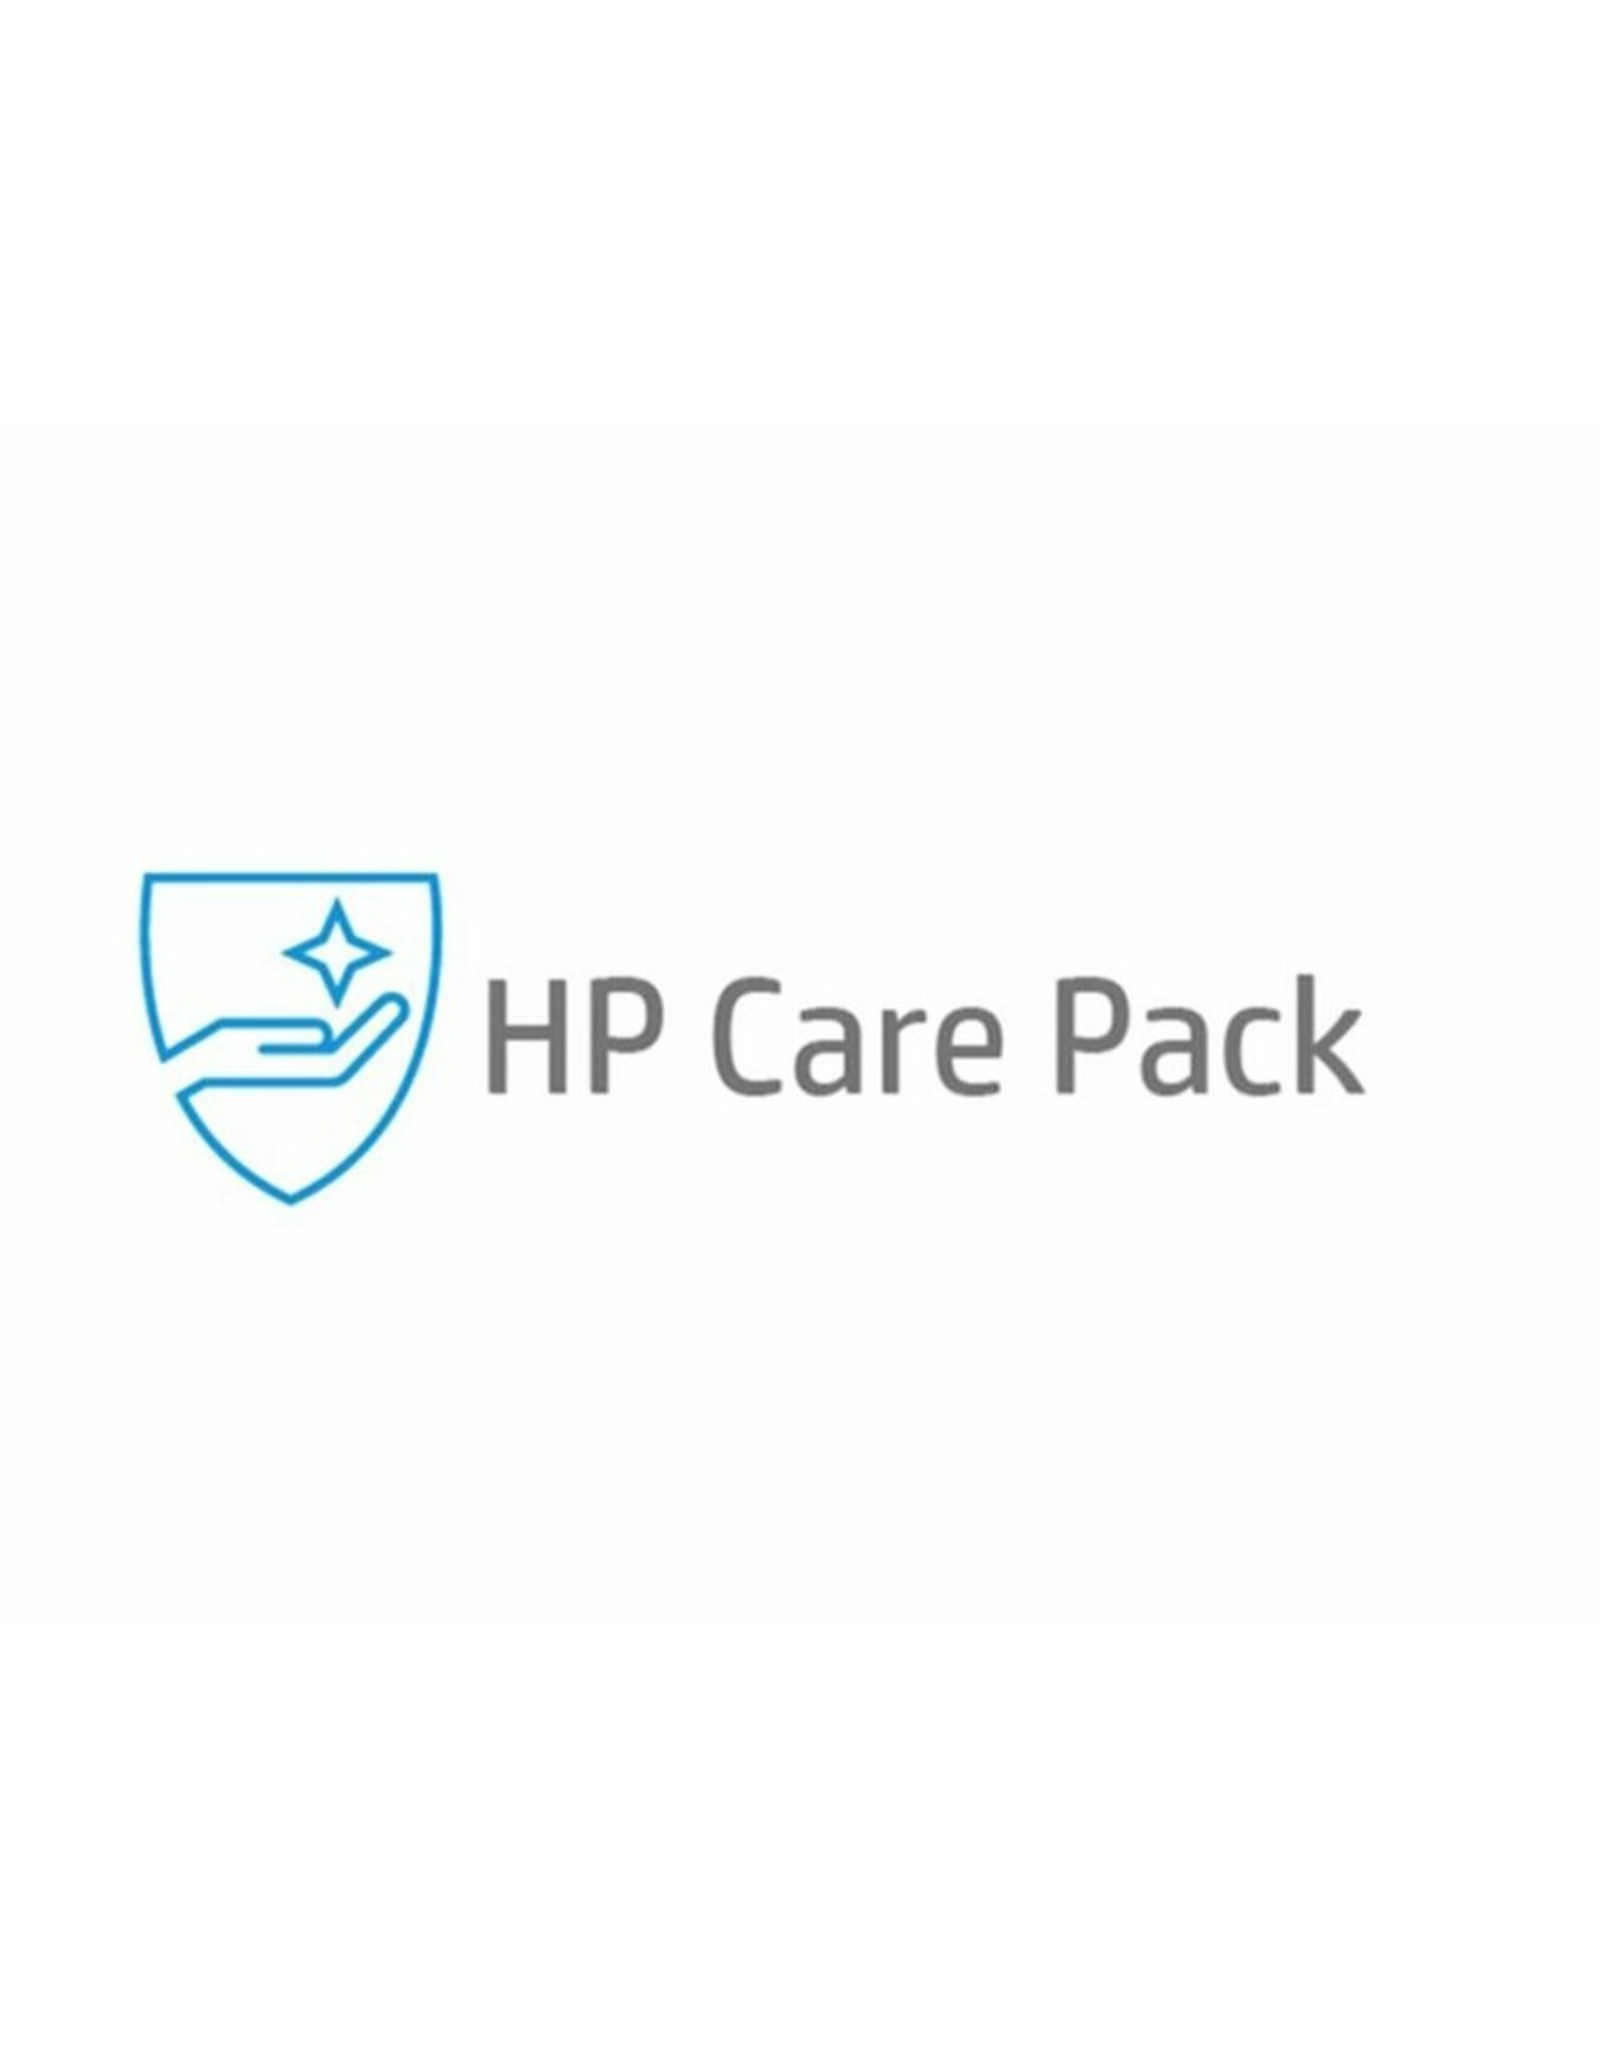 Hewlett Packard HP Care Pack - 3 YEAR NBD WARRANTY - FOR PRODESK 400 AND 490